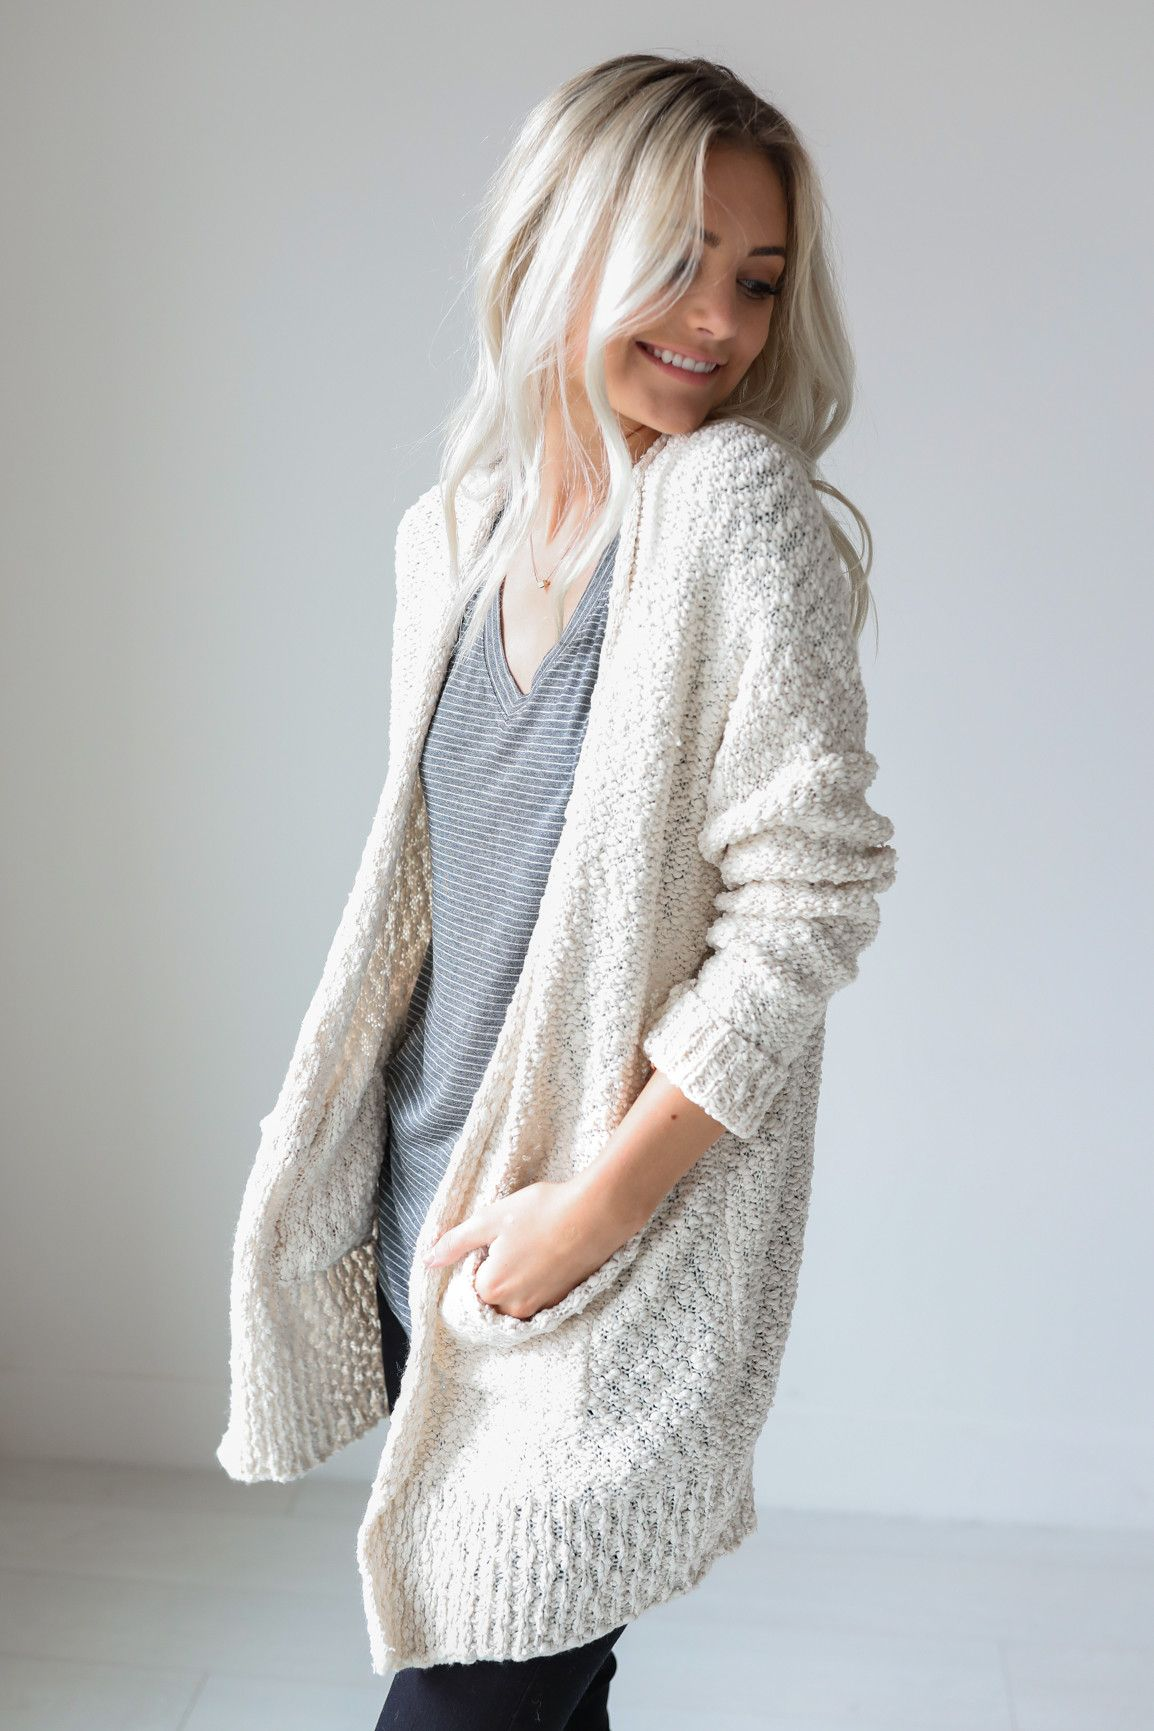 dffca15b61 Cream thick knitted cardigan with pockets • Available in S M and M L. Model  is 5  4